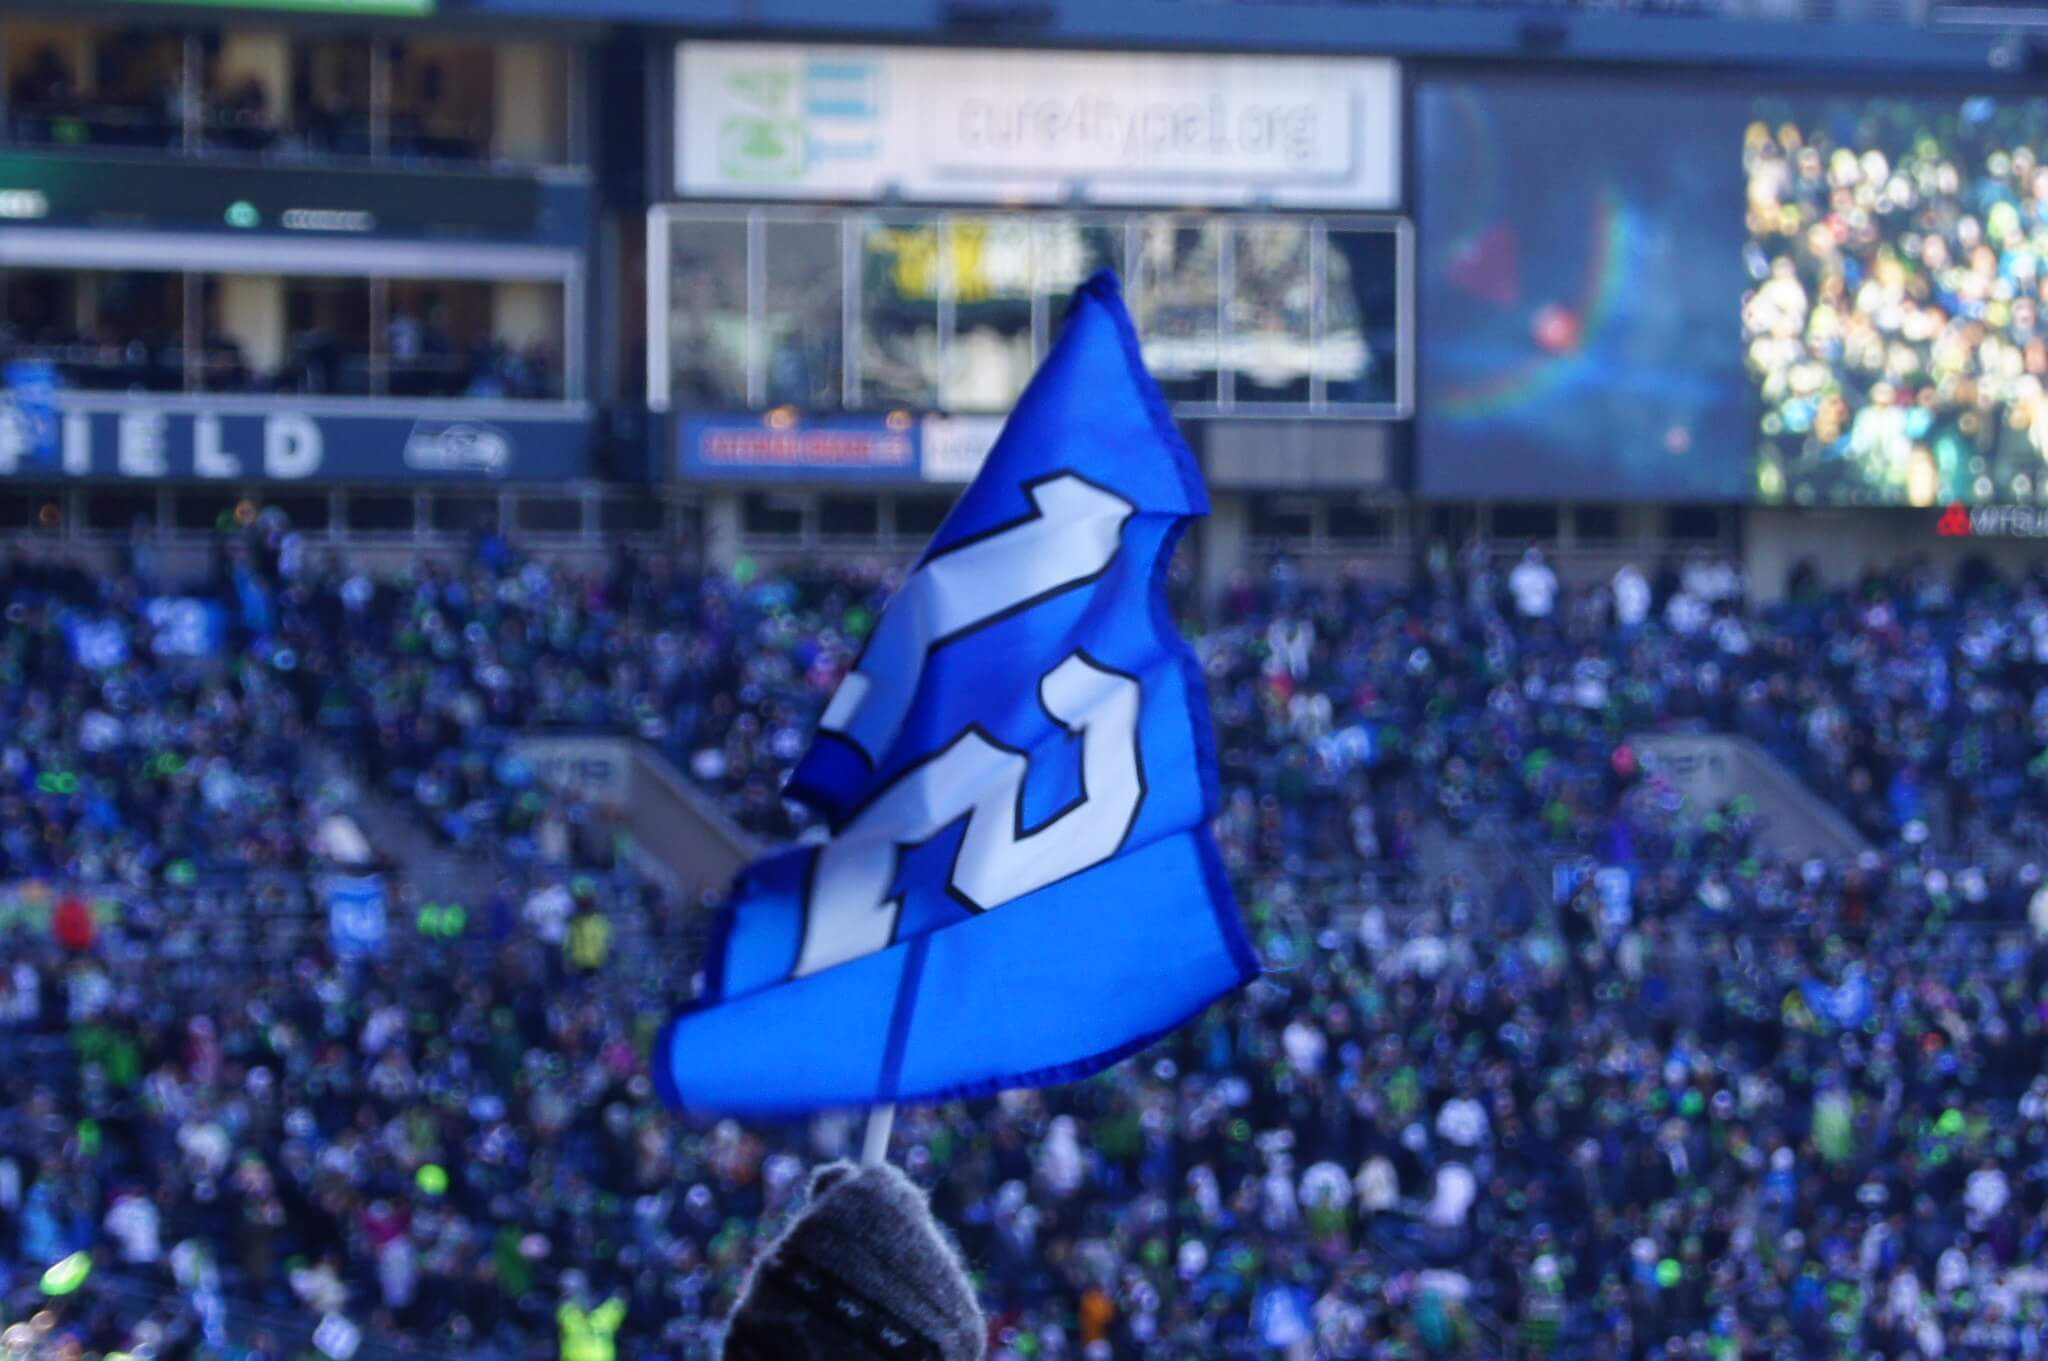 The 12s Flag tradition Seattle Seahawks fans